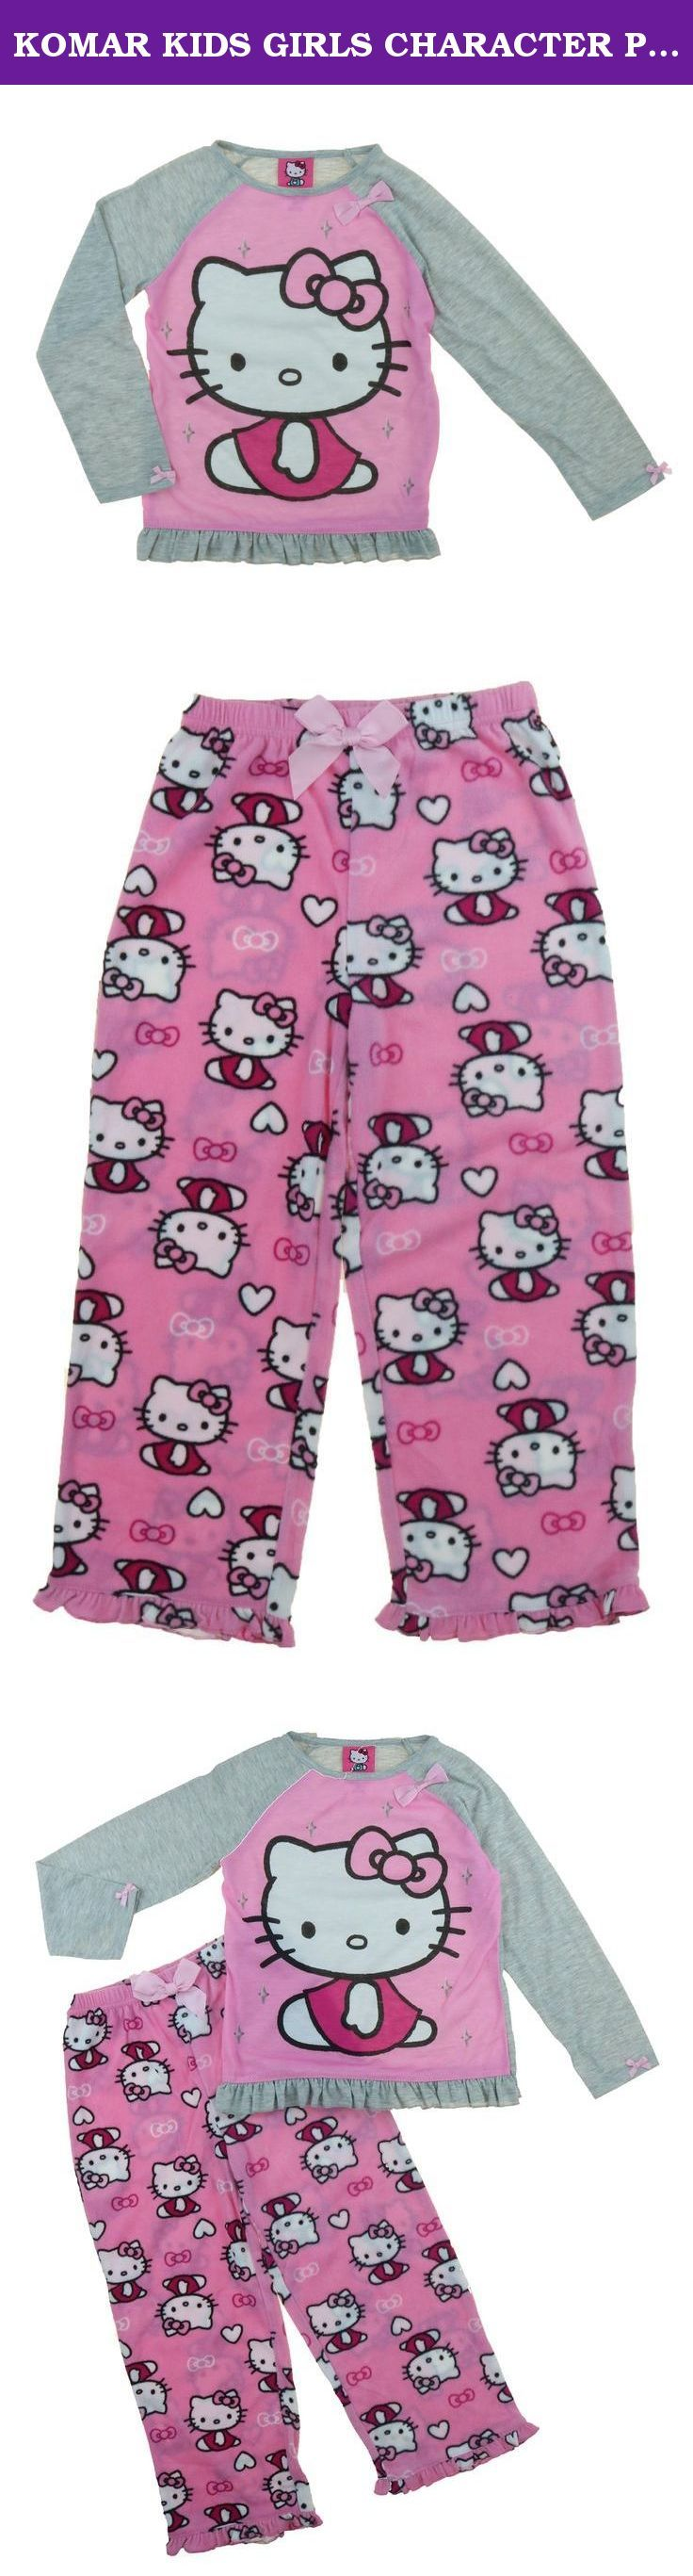 KOMAR KIDS GIRLS CHARACTER PAJAMA SET (6X, Hello Kitty 2-Piece Set). GIRLS CHARACTER PAJAMA SET by KOMAR KIDS BAT GIRL, WONDER WOMAN MY LITTLE PONY or HELLO KITTY Flame resistance Machine washable Imported Content: 100% polyester Sizing: 2T-6X Care Instructions: Turn garment inside out Machine wash cold Gentle cycle with like colors Use non-chlorine bleach when needed To retain flame resistance use detergent only Do not use soap Tumble dry low Remove promptly Iron on lowest setting.